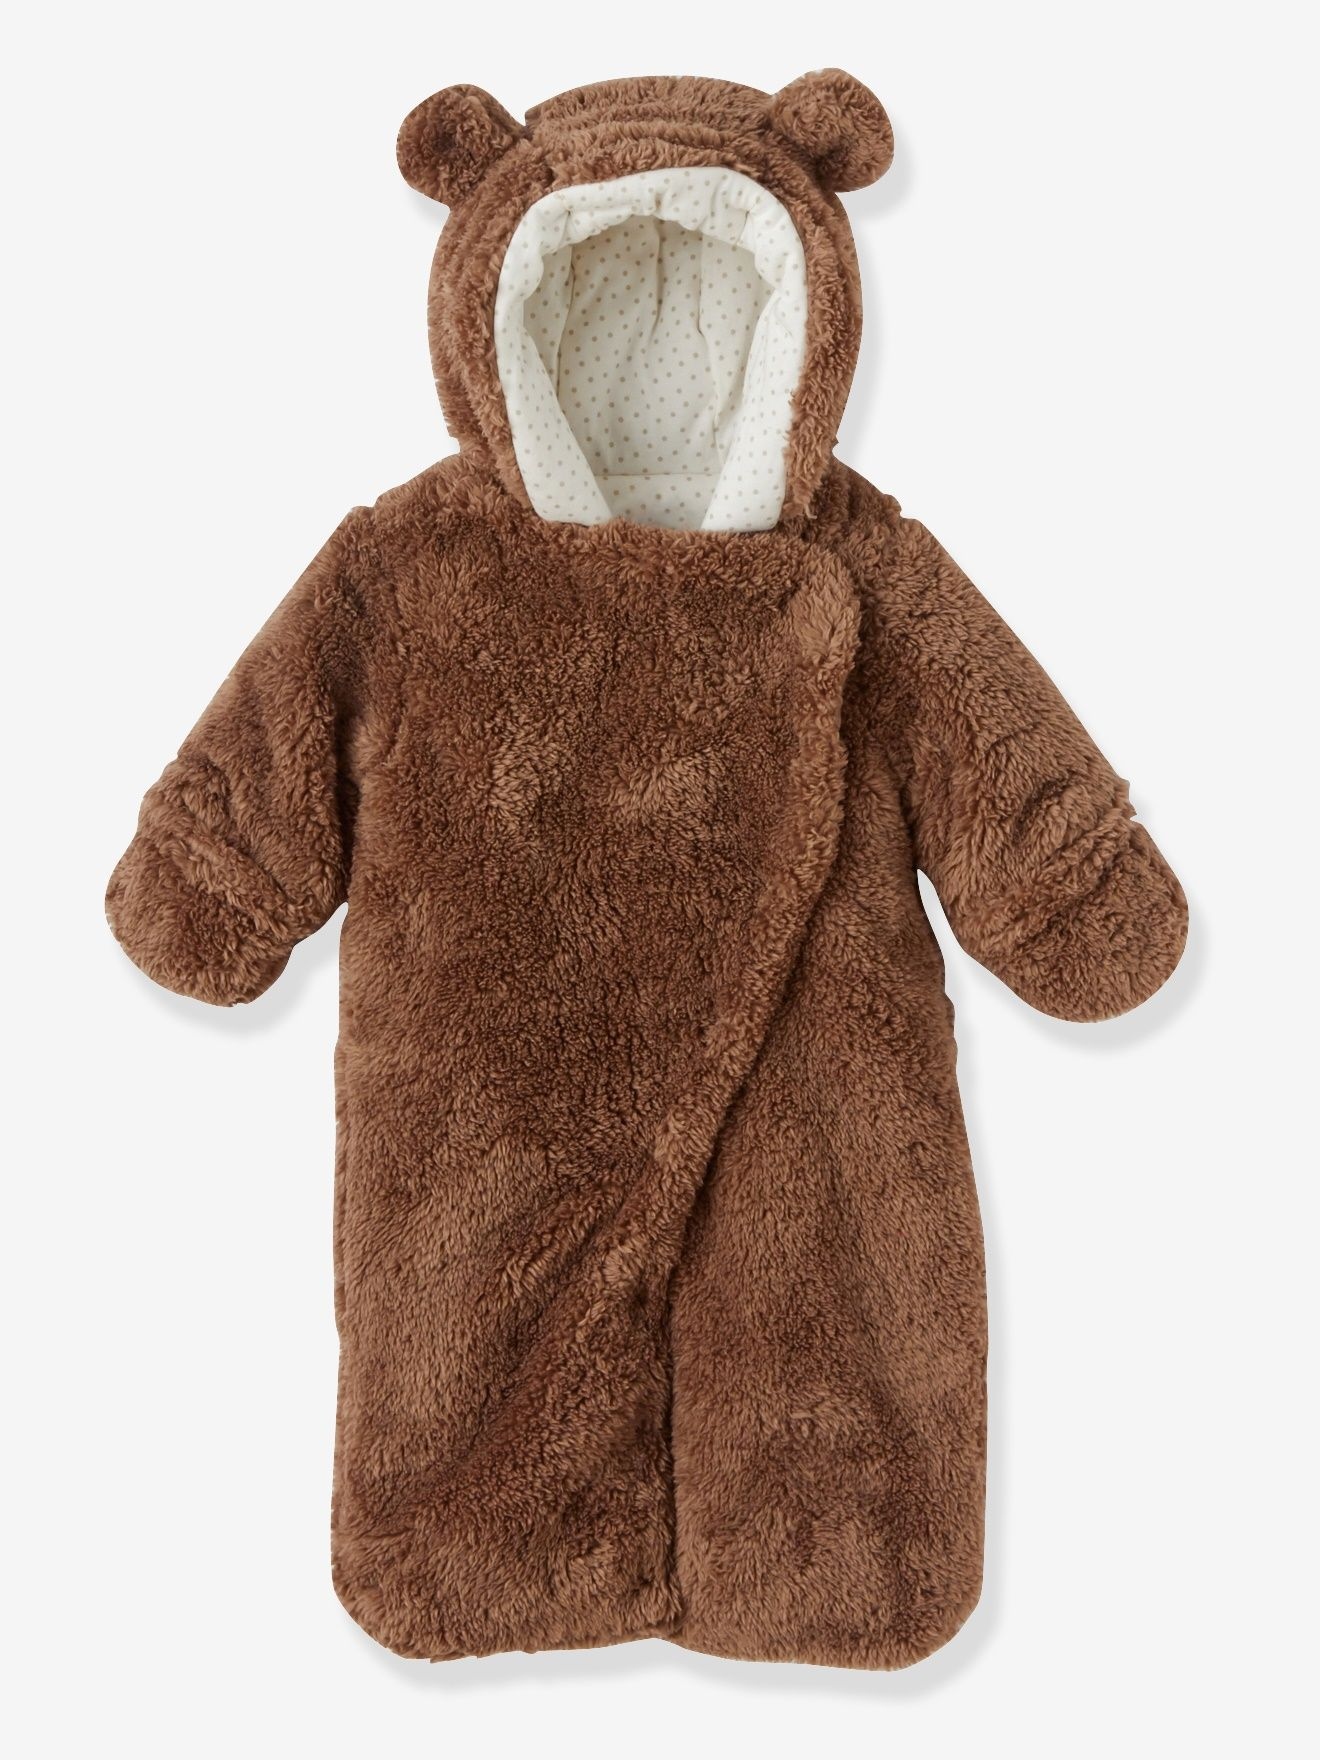 50016a3b3 Newborn Faux Fur Convertible Snowsuit - beige dark solid, Baby ...